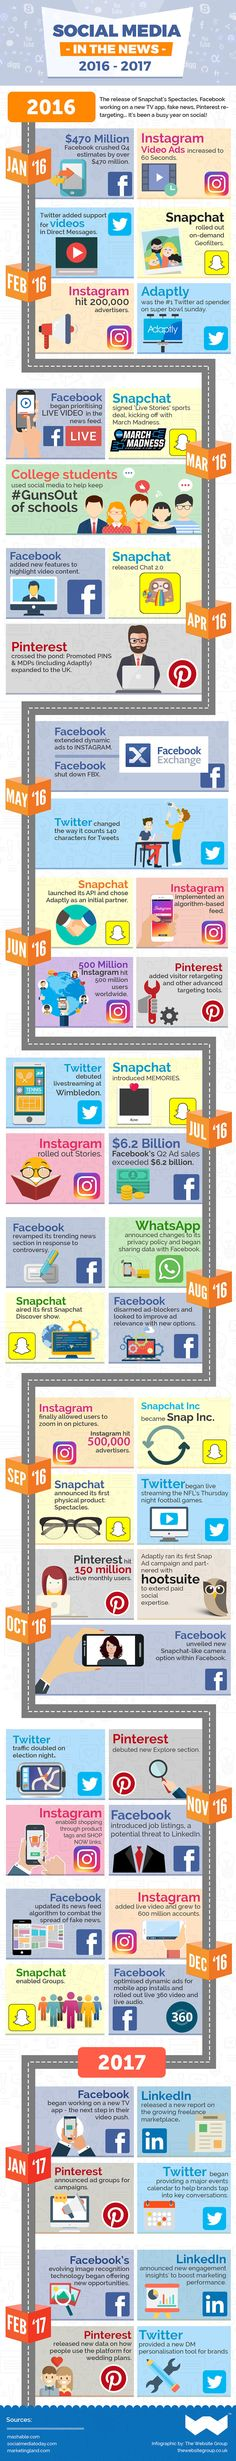 2016 was a busy year for social media and social networking platforms. Check out this infographic timeline of social media highlights, events, and milestones from 2016 through early 2017.